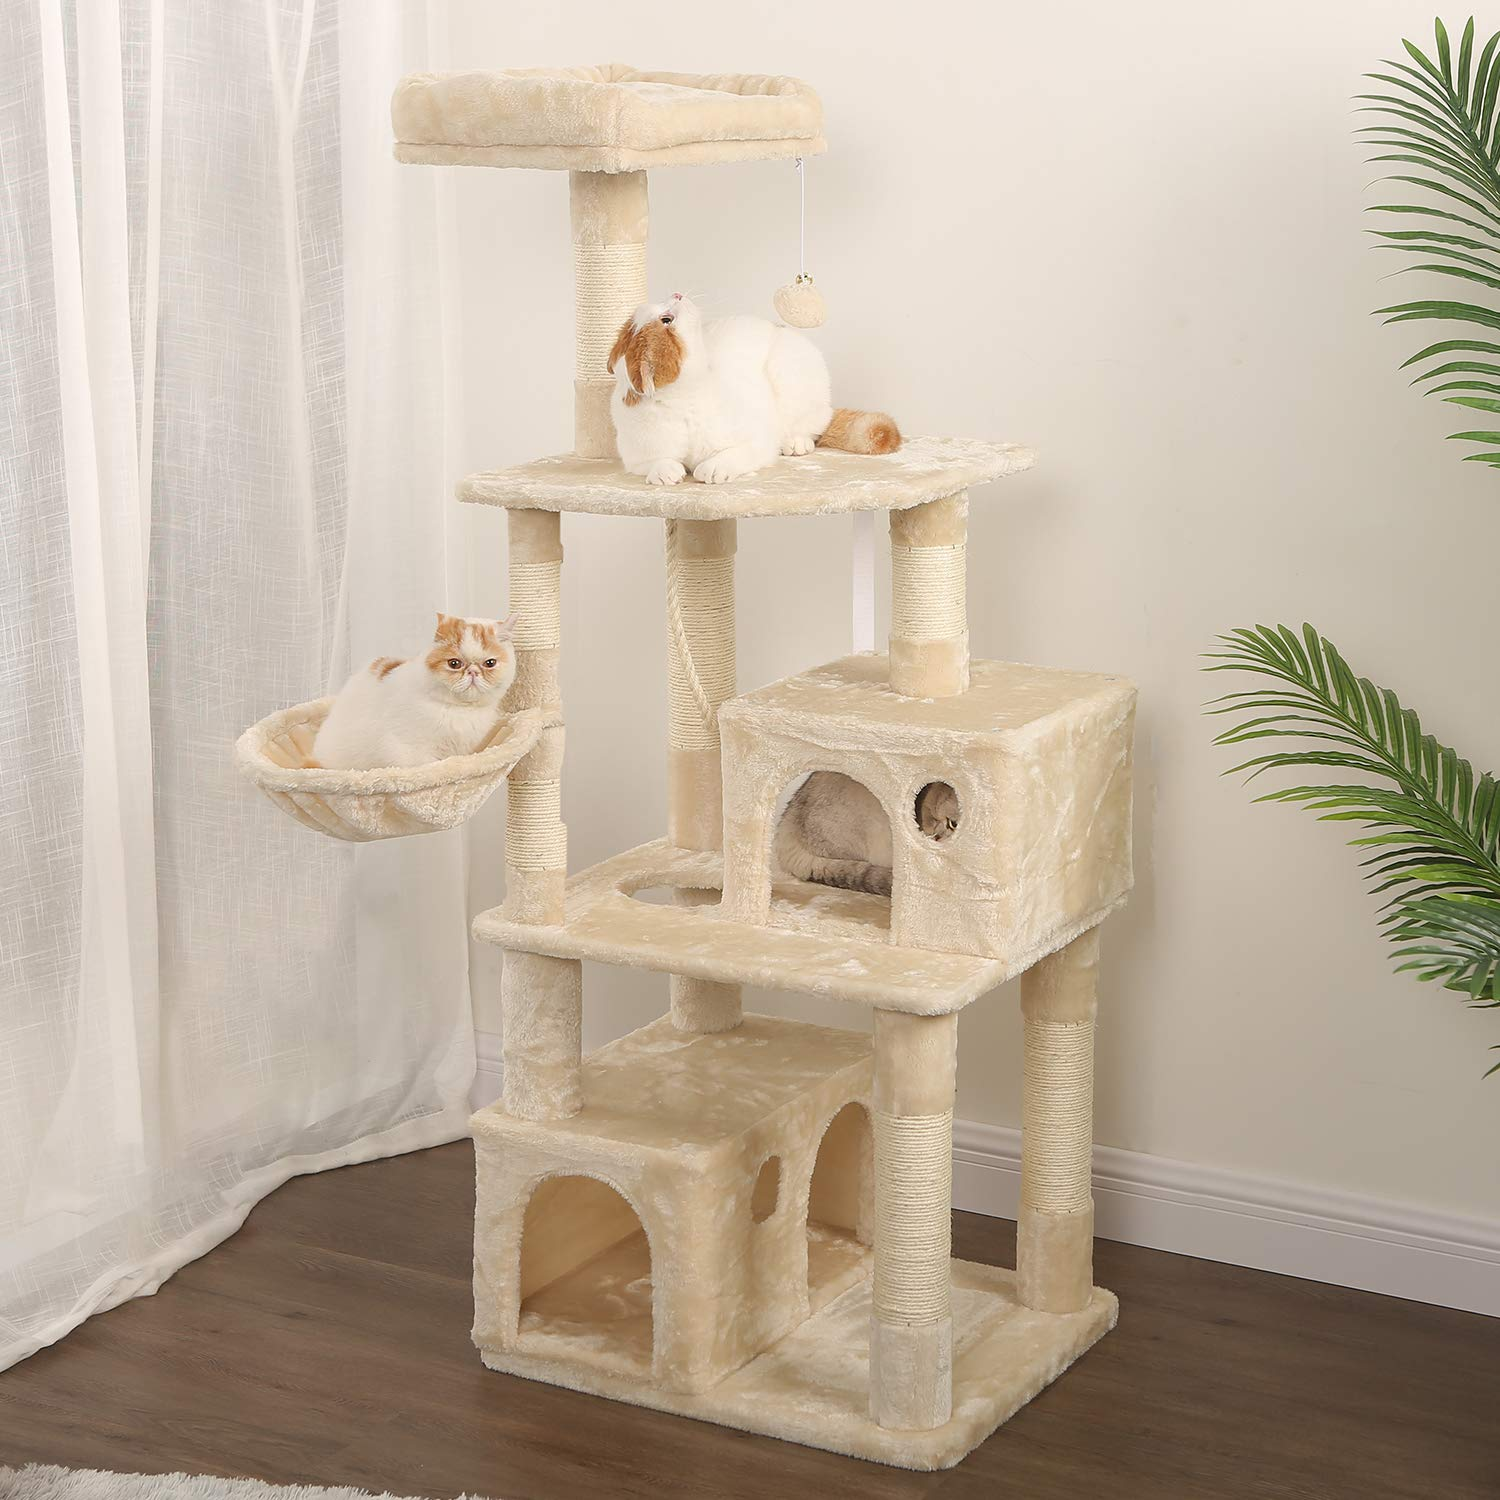 WLIVE 59'' Large Cat Tree Condo with Sisal Scratching Posts, 2 Plush Condos and Basket Lounger, Cat Tower Furniture WF062A by WLIVE (Image #2)